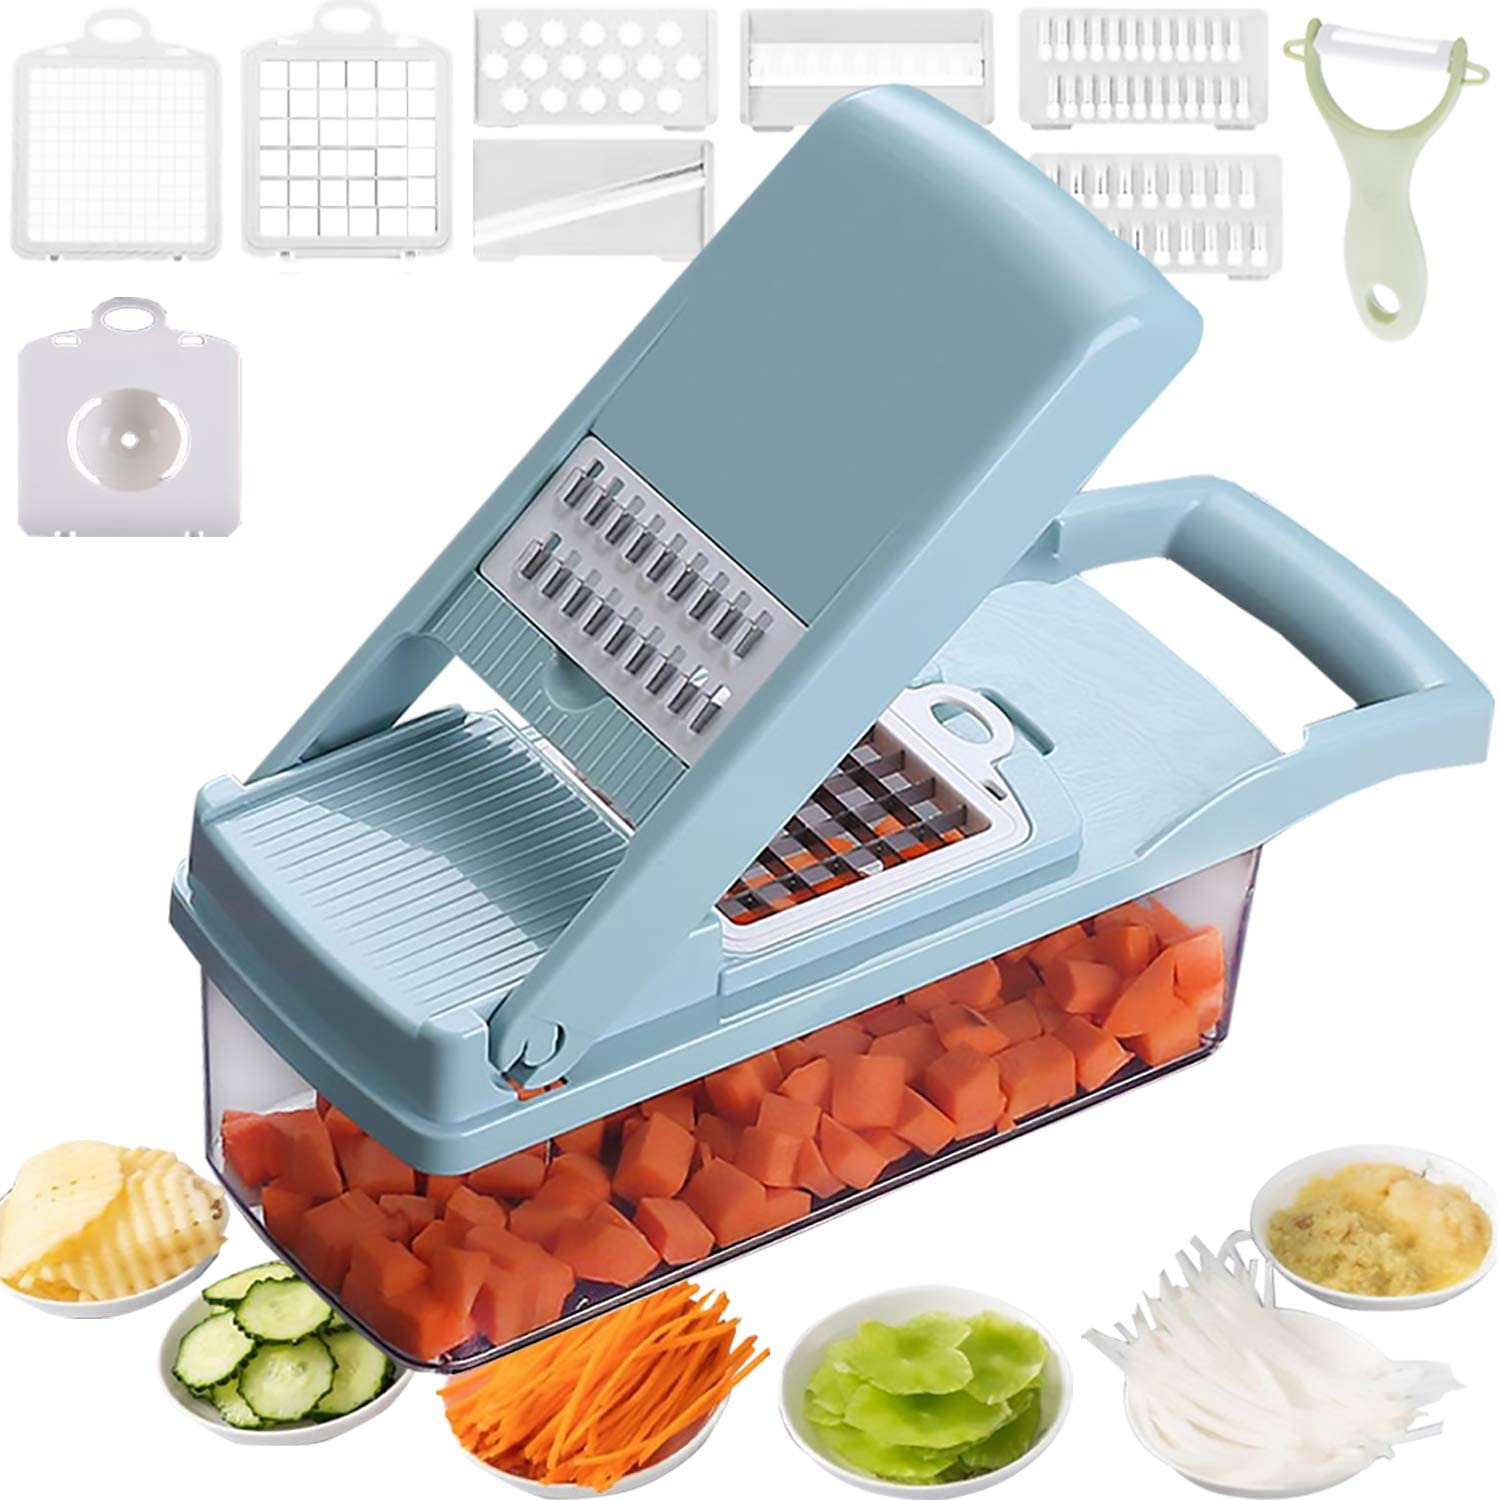 Mandoline Slicer Salad Chopper Spiralizer Vegetable Slicer 12 in 1 Food Choppers And Dicers Cheese Slicer 7 Blades